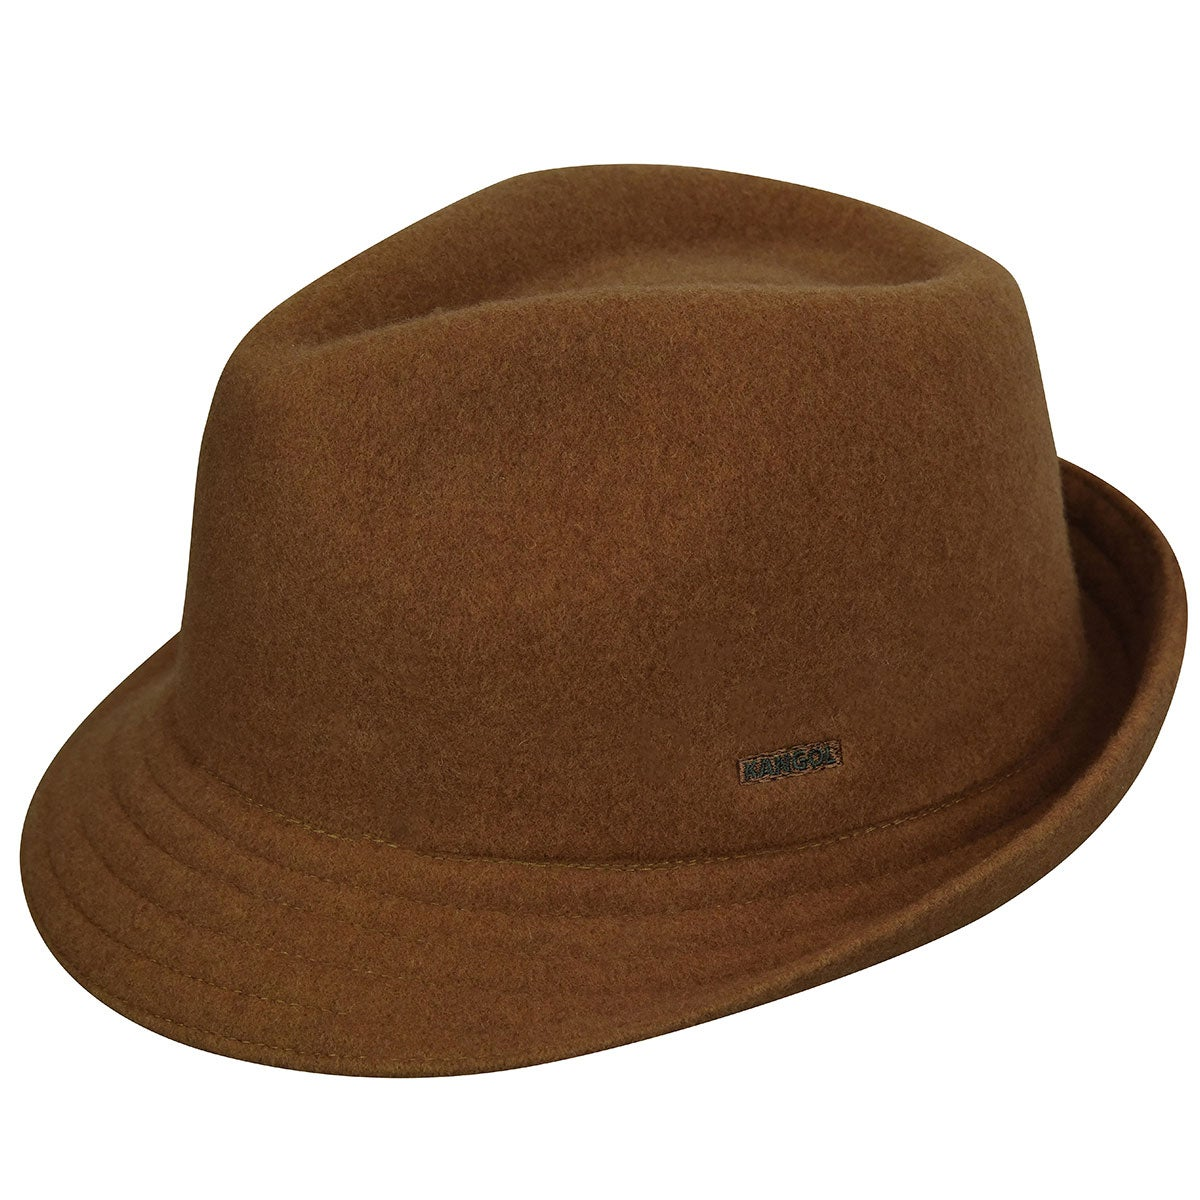 1950s Mens Hats | 50s Vintage Men's Hats Wool Arnold $48.75 AT vintagedancer.com